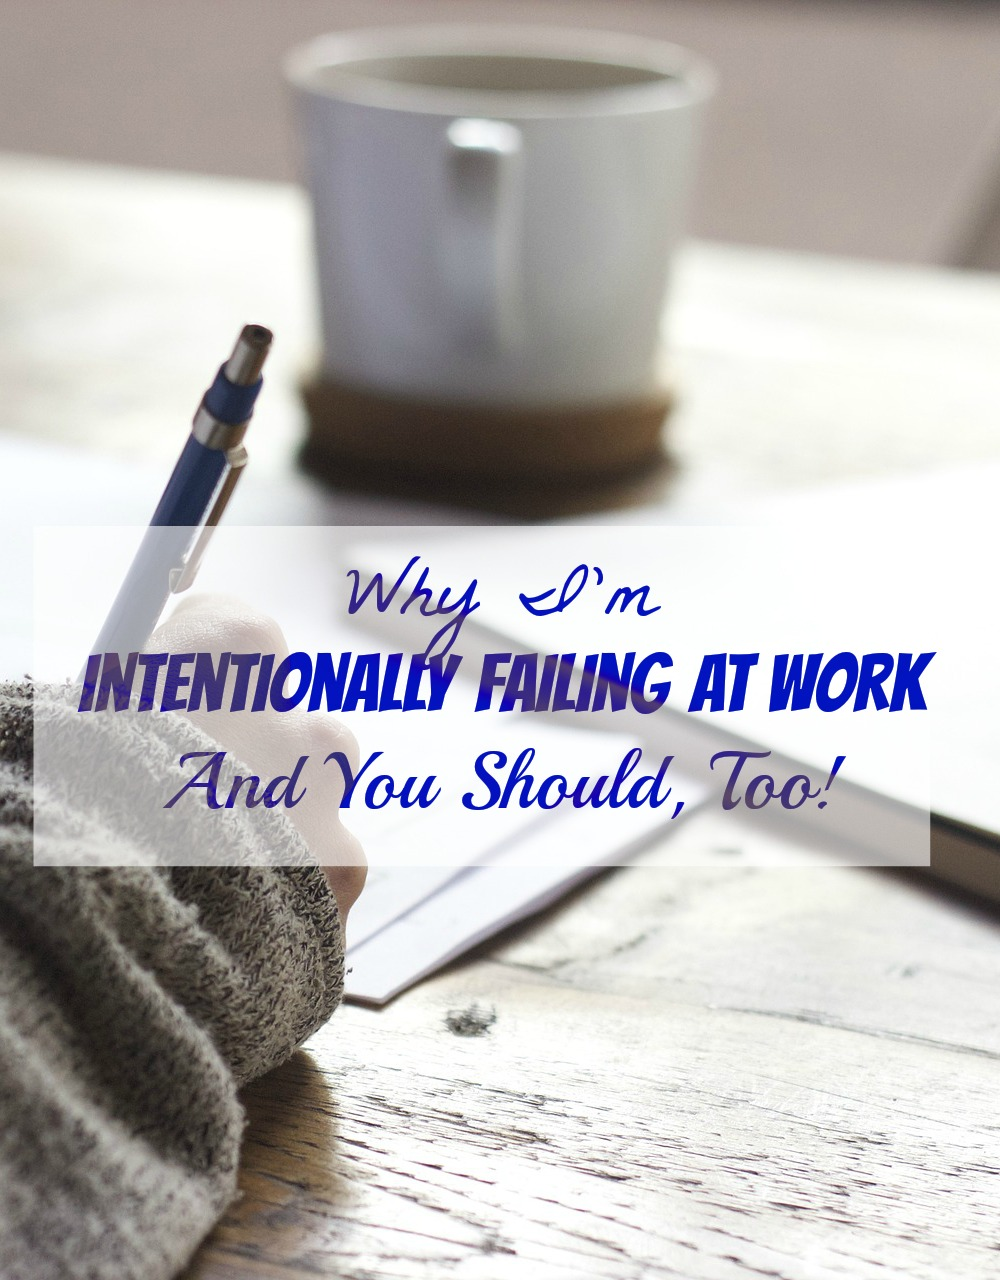 Why I'm Intentionally Failing At Work, And You Should Too